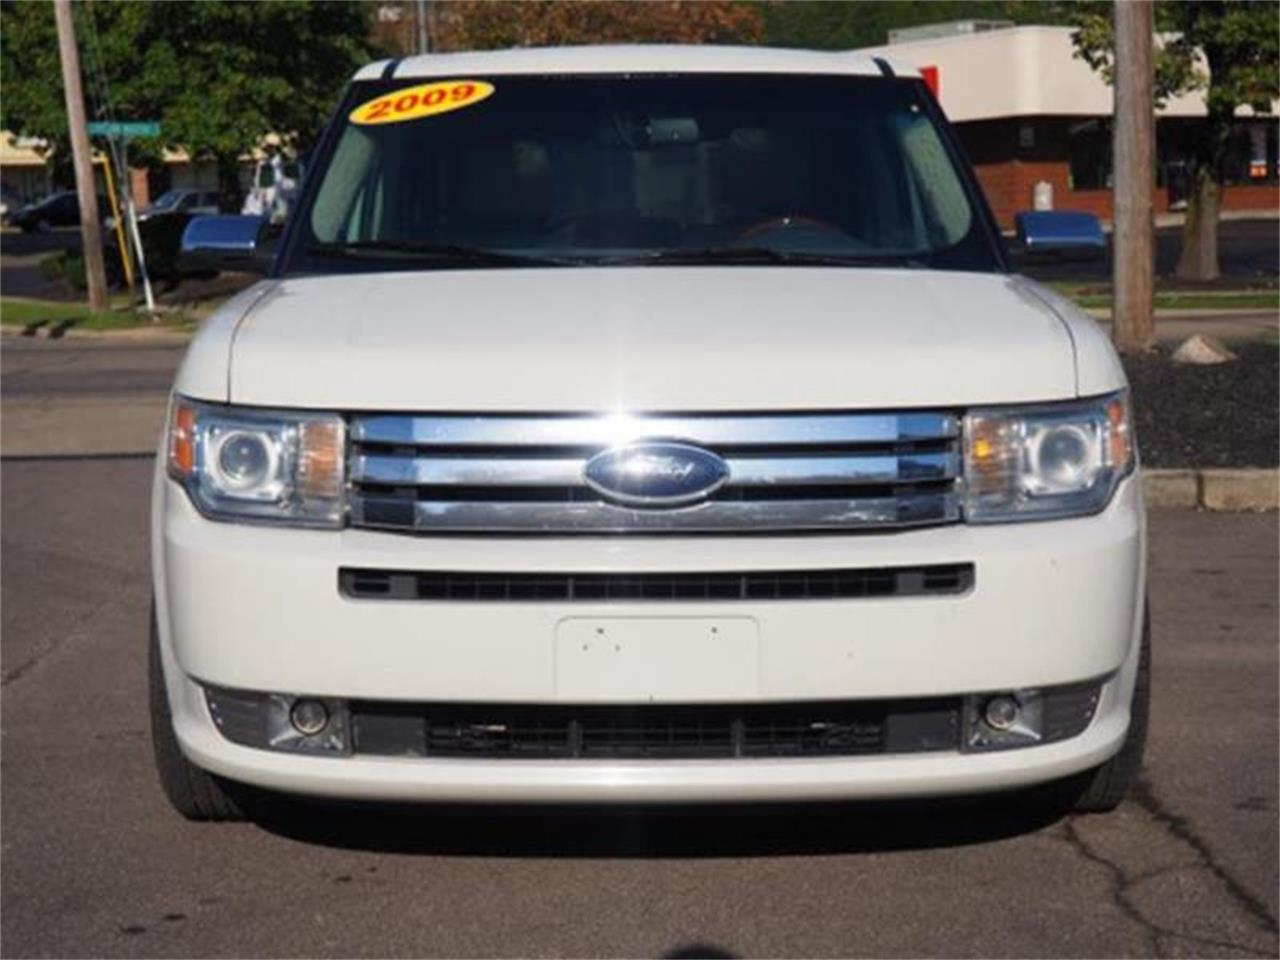 Large Picture of 2009 Ford Flex located in Ohio - $8,900.00 - MBN3